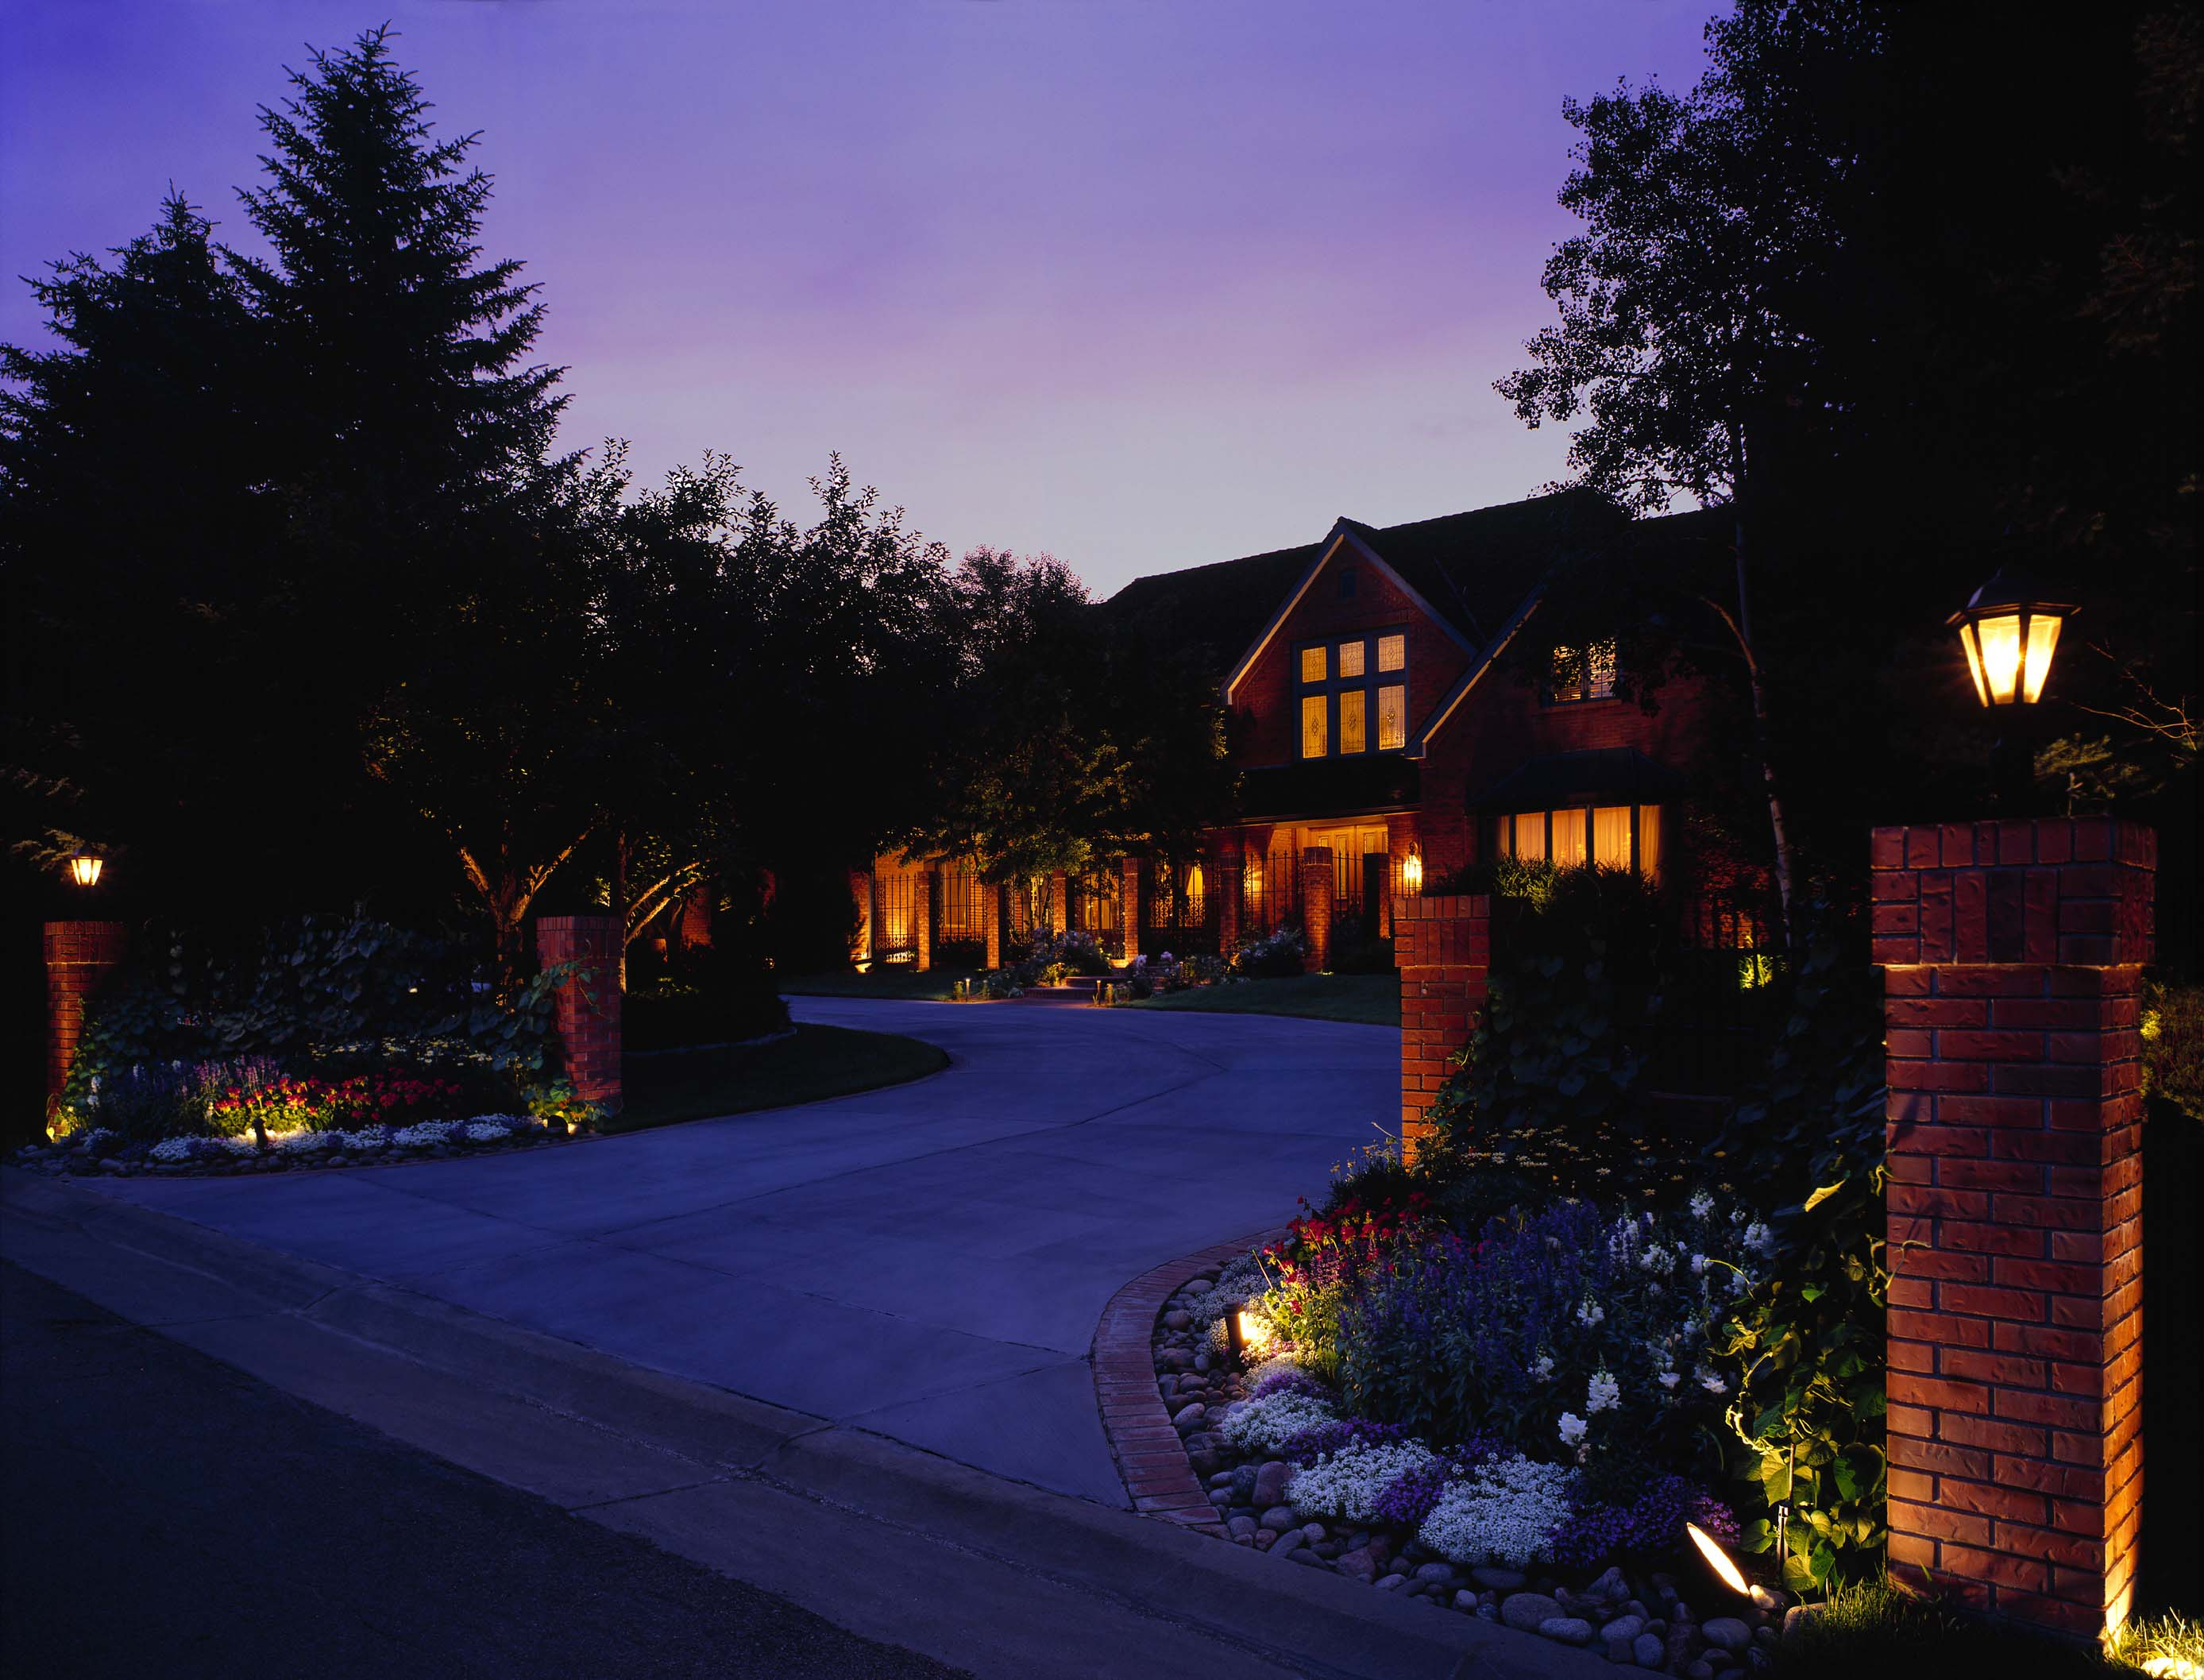 Cherry Hills Farm/Arapahoe County landscape/architectural lighting. For this project, the homeowners wanted to illuminate primarily the beautiful brick entrance columns and flower beds lining the circular drive. Here you can see how the low voltage lighting system really brings out the coloring and texturing of the red brick – as well as the flowers.